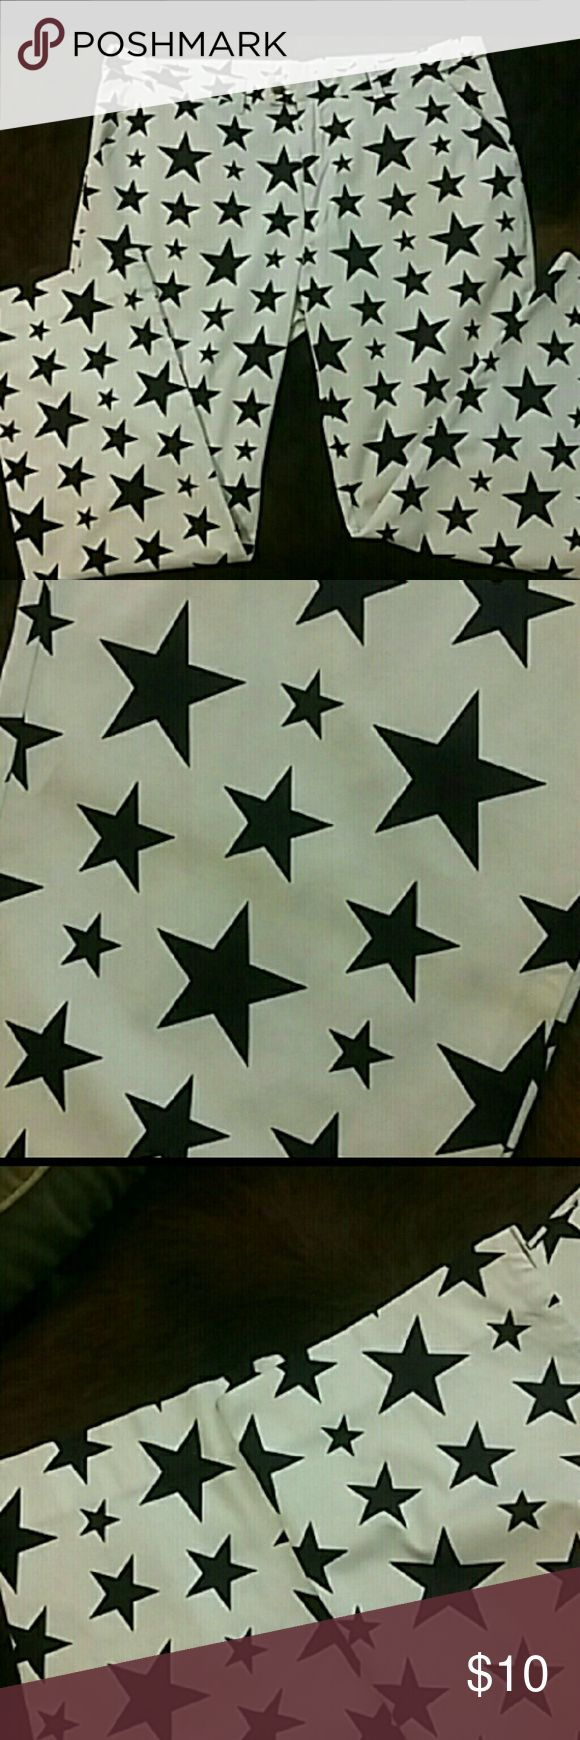 Loudmouth Golf pants Men's 42x32 Loudmouth Golf pants in Star pattern. In perfect condition aside from one flaw-a dingy line across one leg. Shown in second picture. Price reflects flaw. Loudmouth Pants